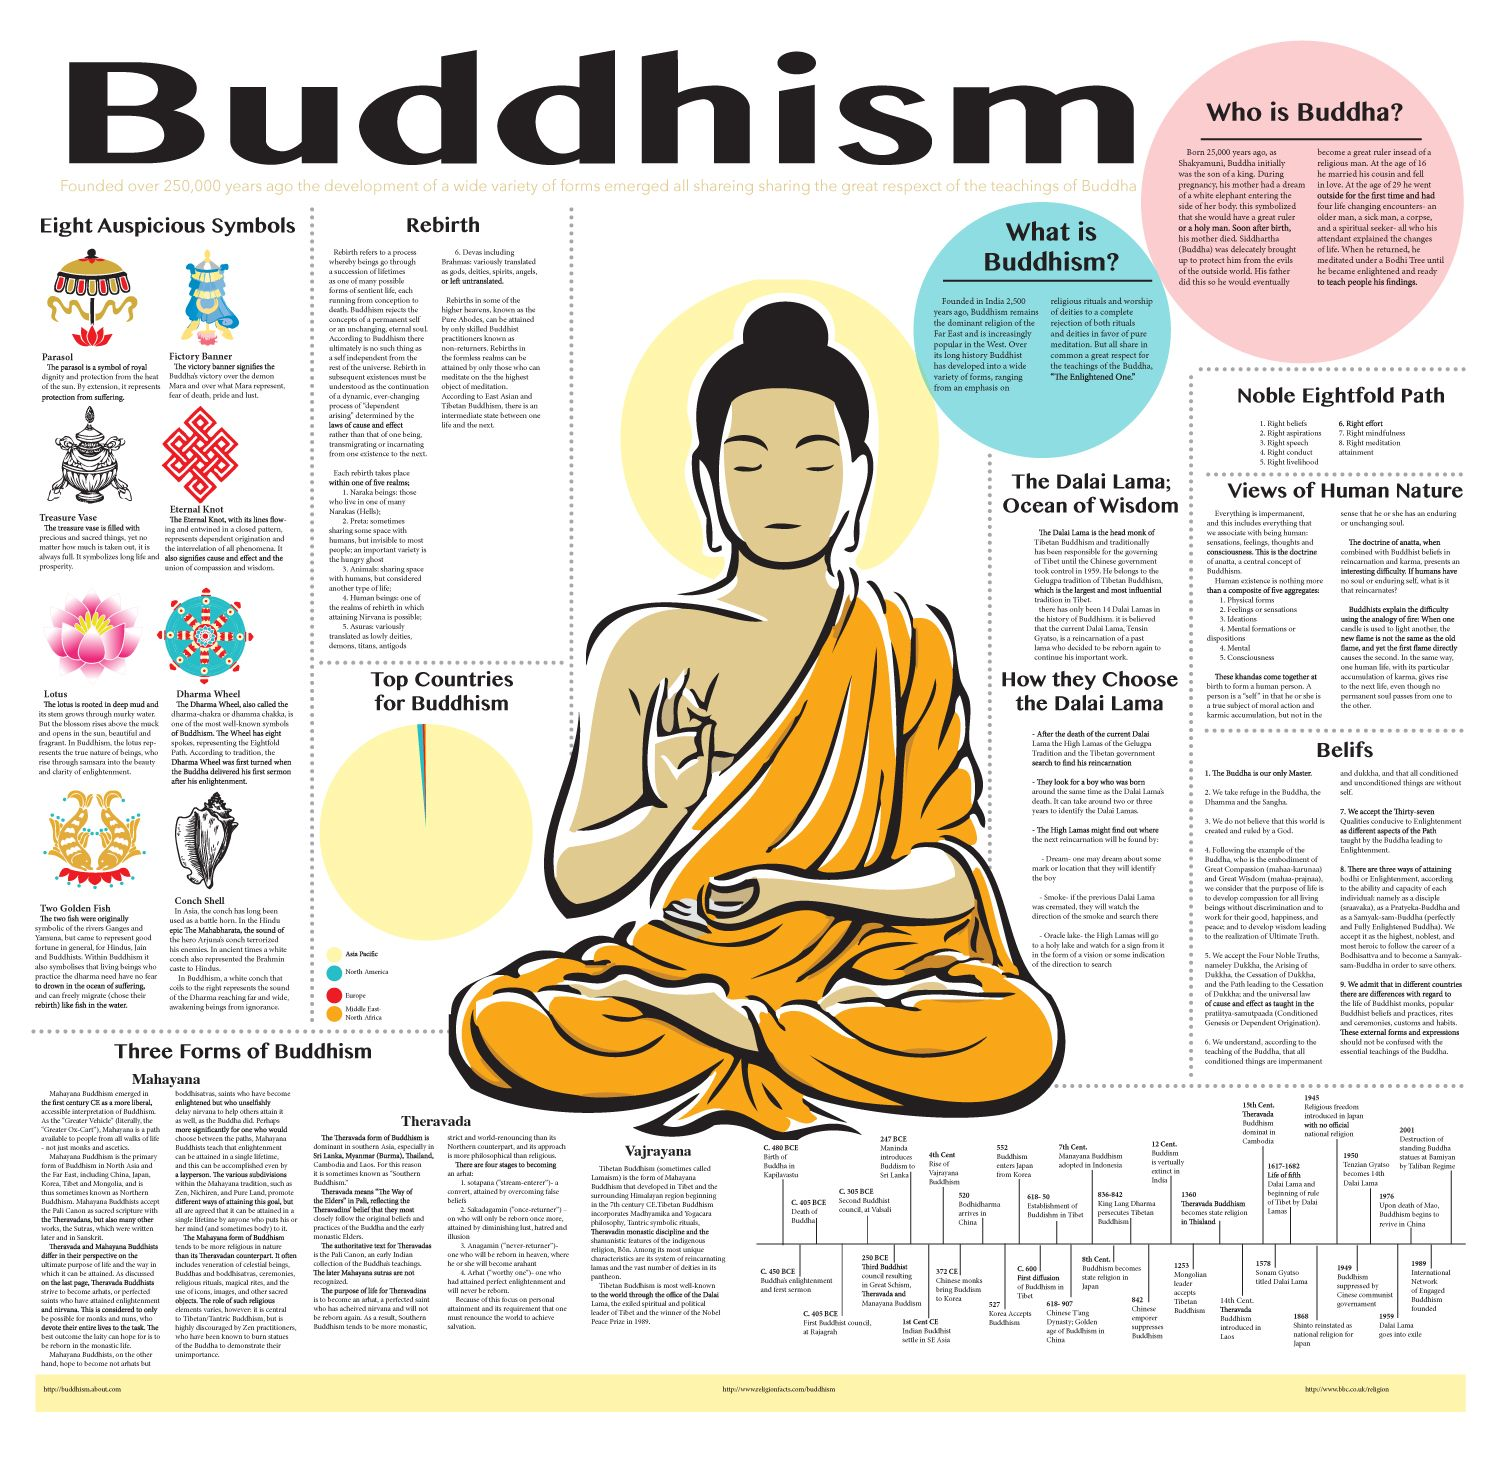 3 Buddhist Beliefs That Will Rock Your World And Make You Much Happier Www Dailyupdate1 Blogspot Com Buddhist Beliefs Buddhism Facts Buddhism Beliefs